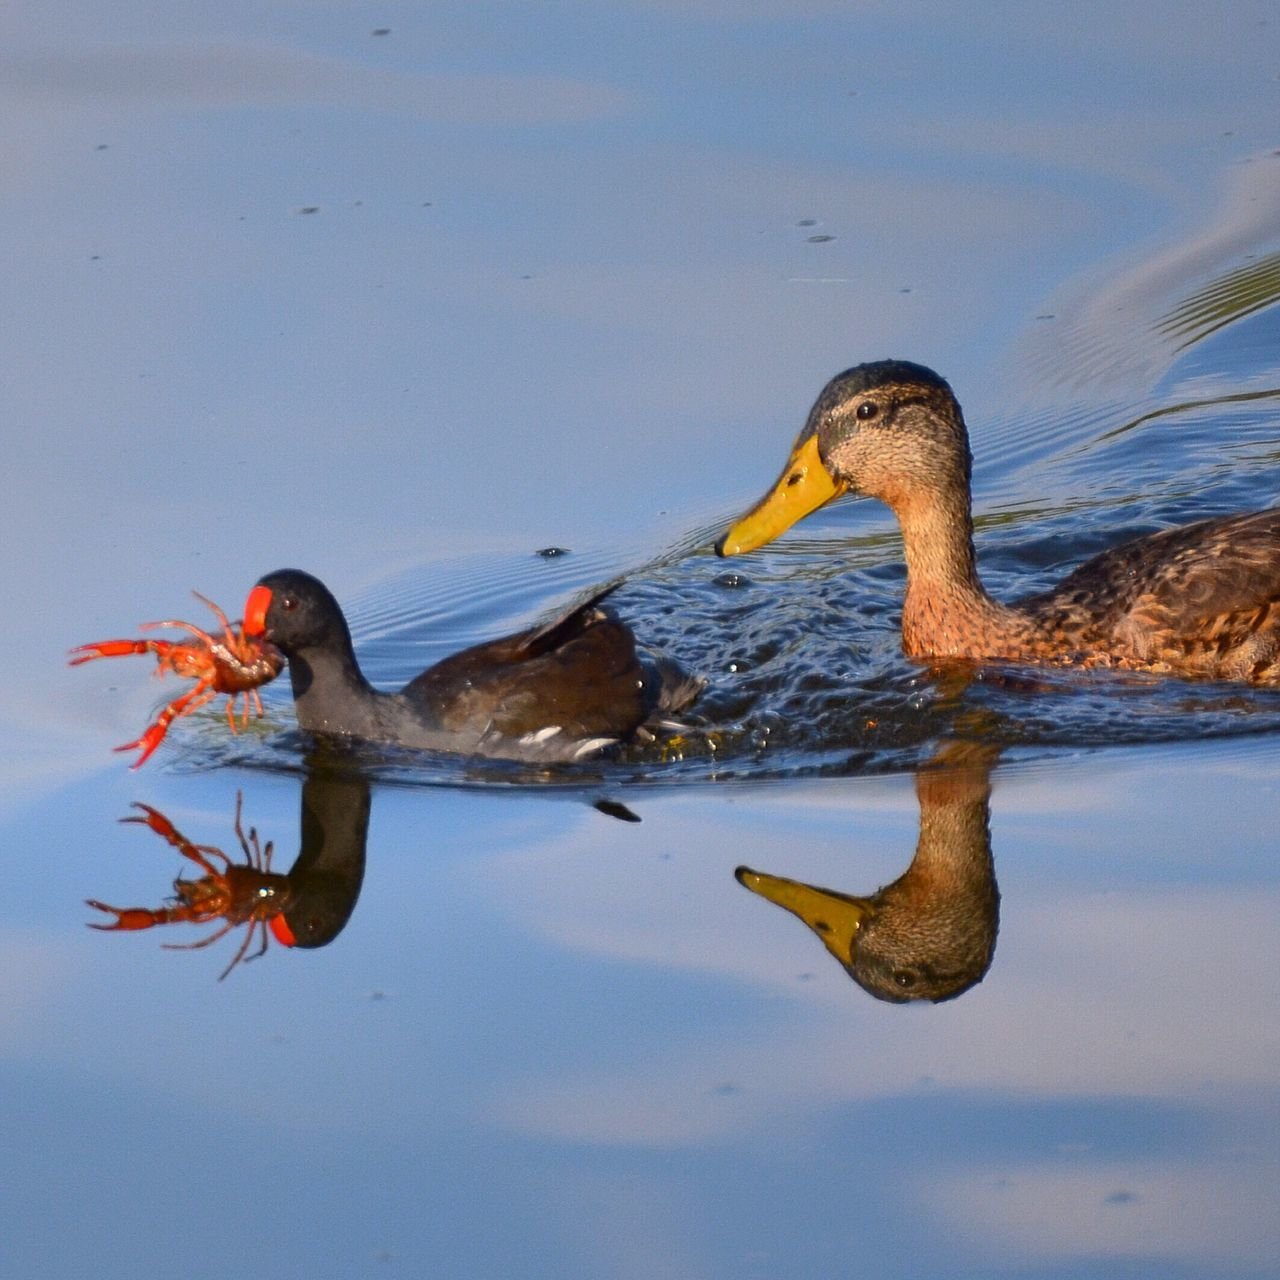 High Angle View Of Duck Carrying Lobster In Mouth While Swimming In Lake